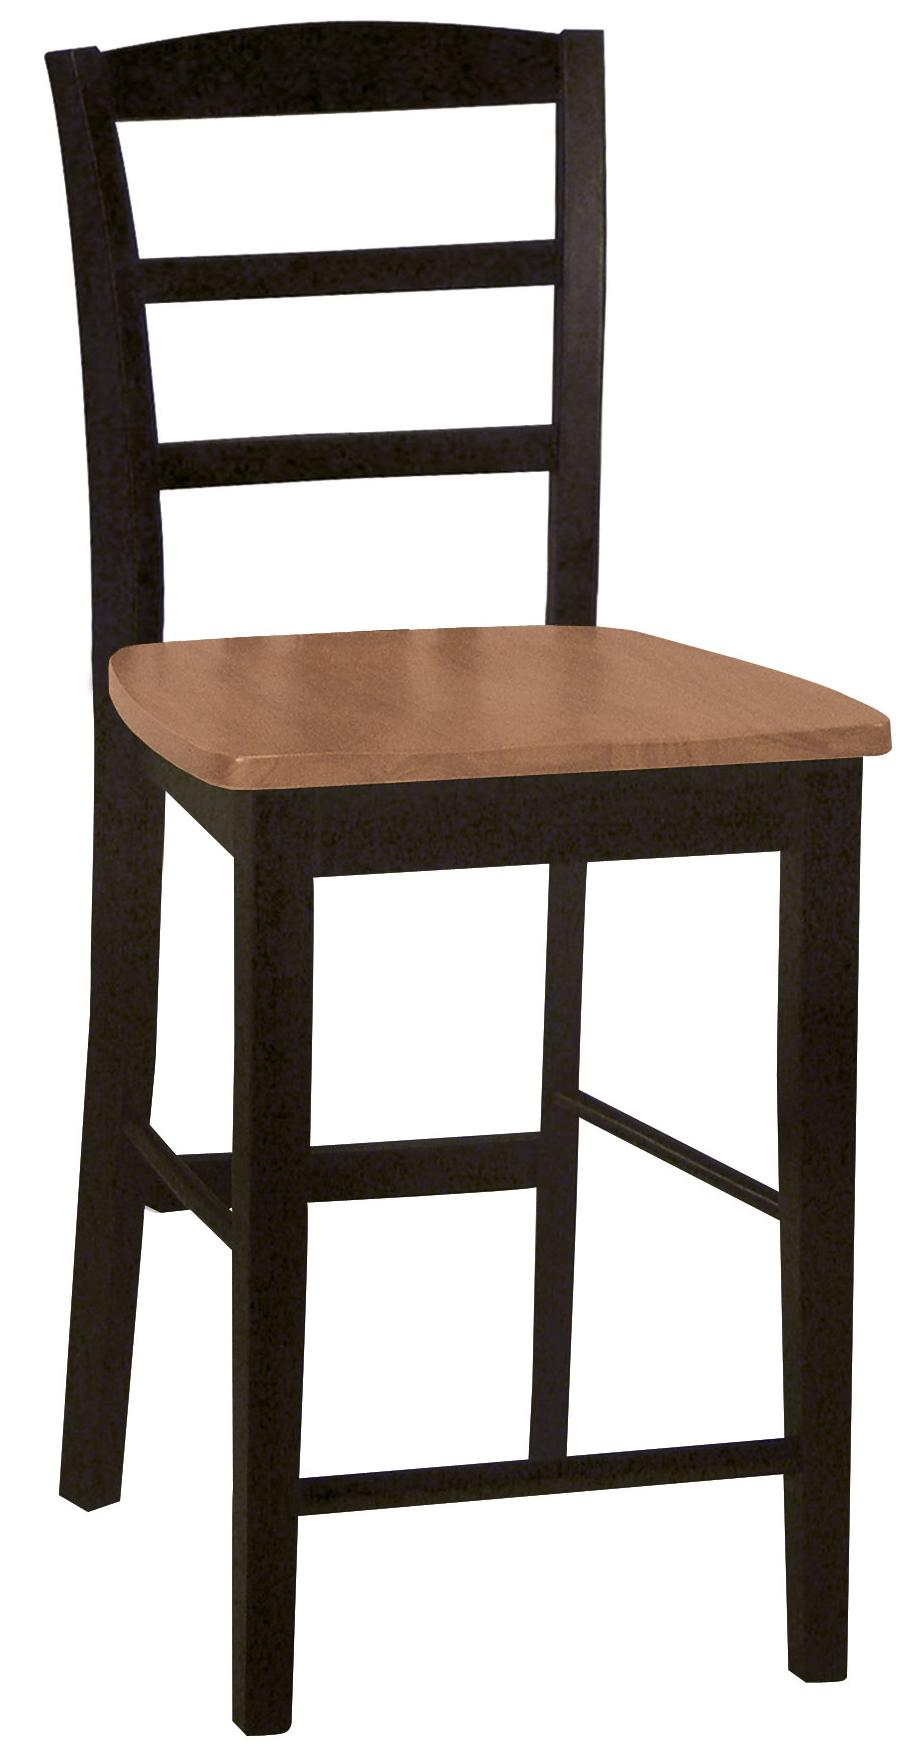 John Thomas Dining Essentials Ladderback Bar Chair - Item Number: S57-402